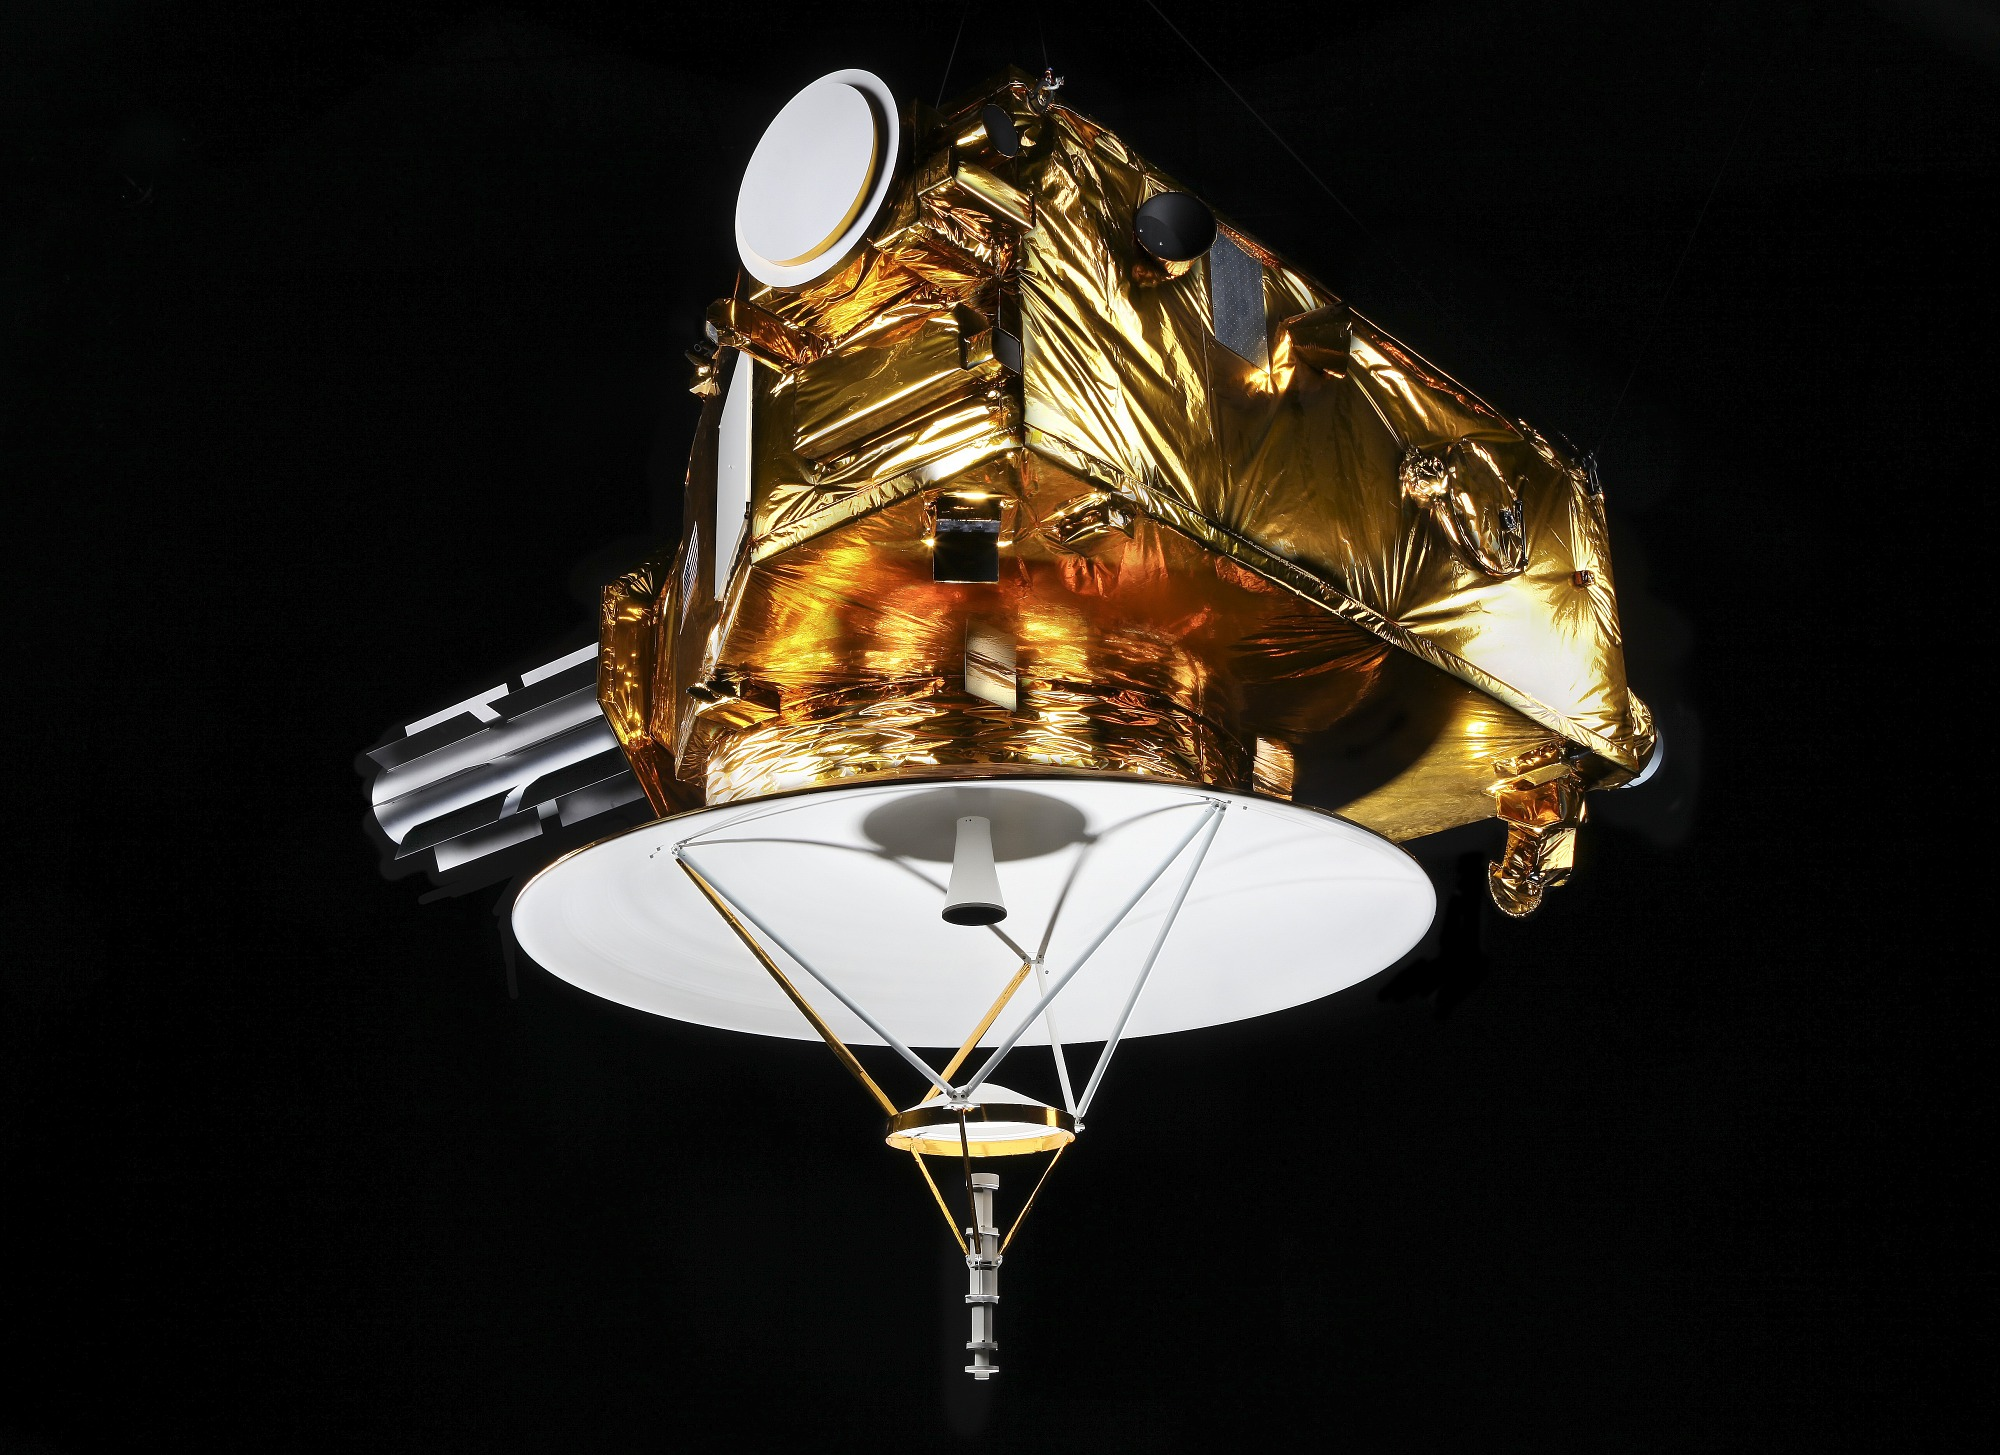 Image of : Spacecraft, New Horizons, Mock-up, model